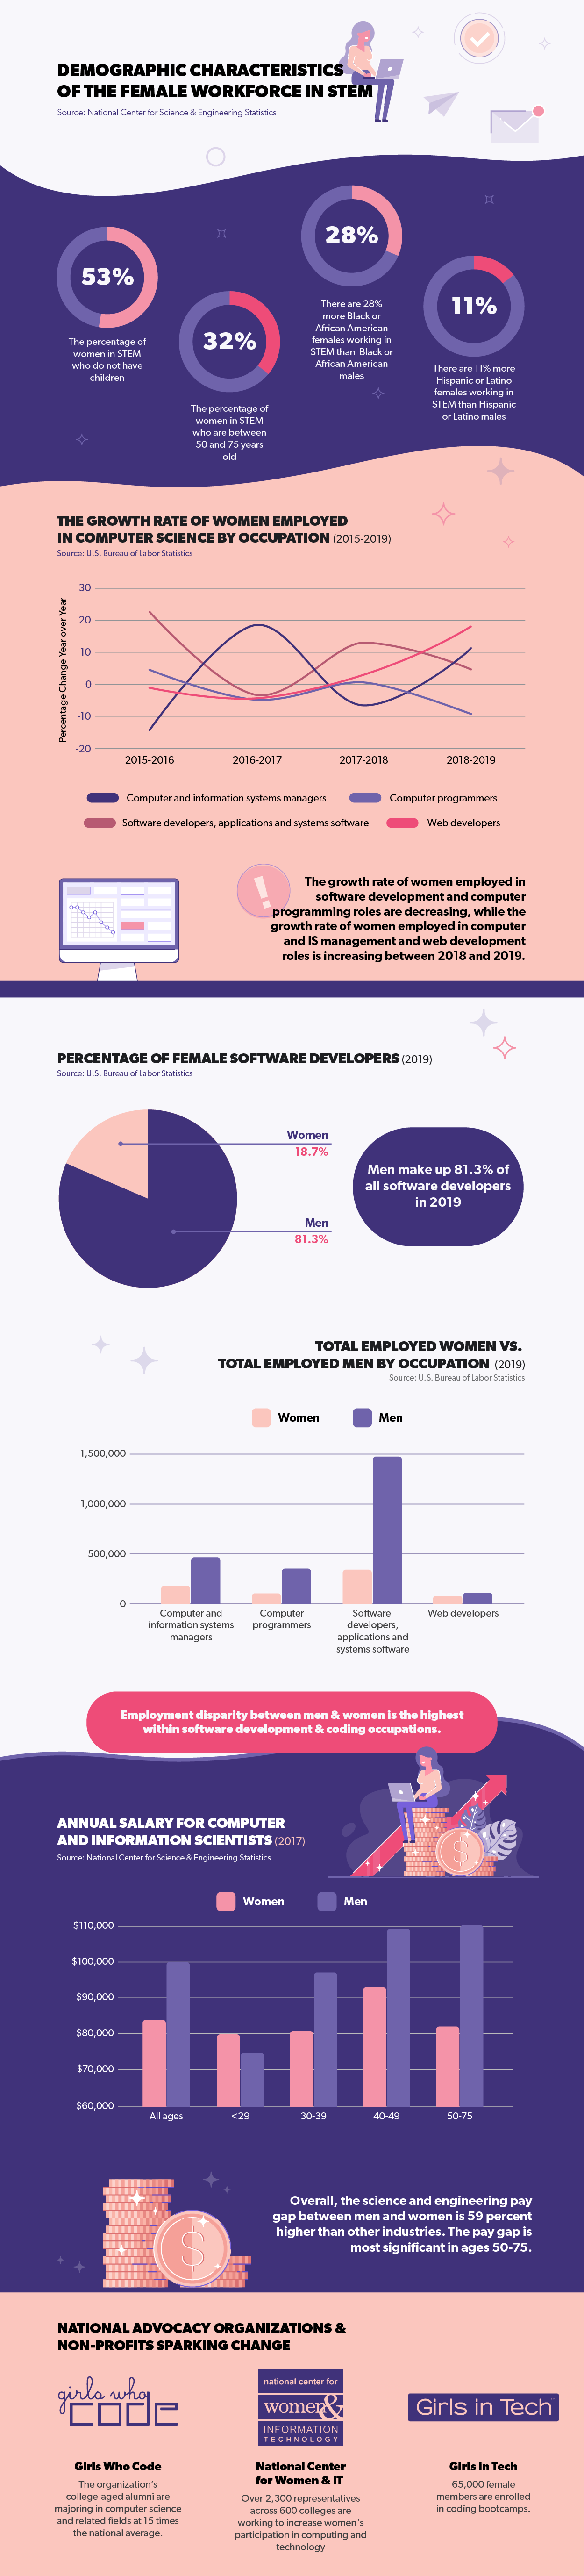 women in computing infographic